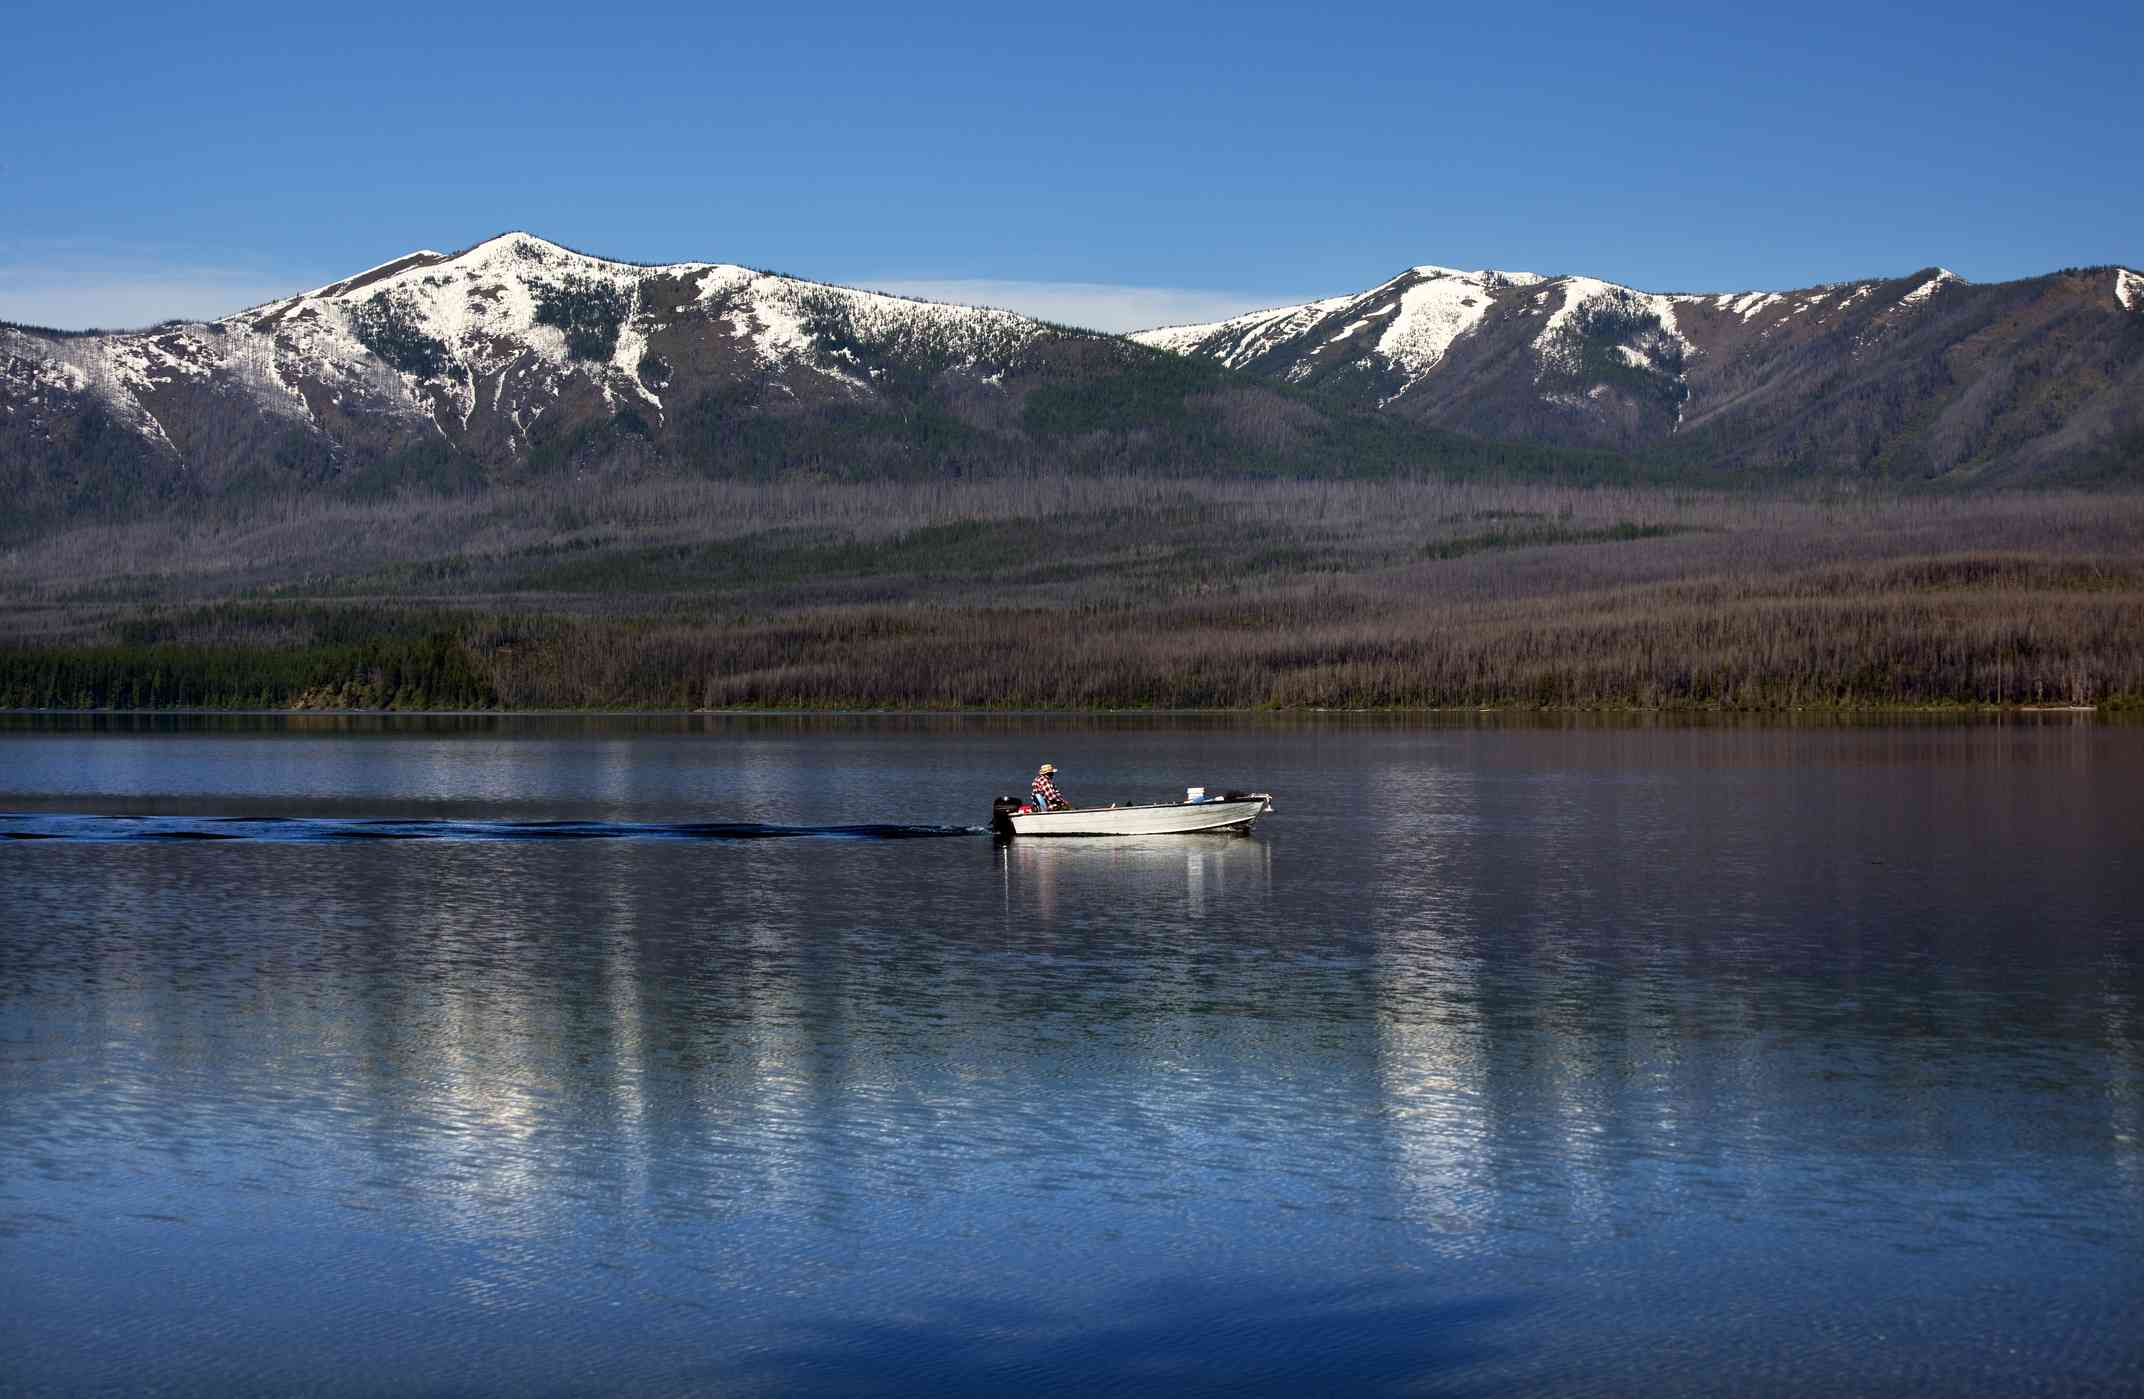 Man in a small white boat fishing on Lake MacDonald with the Snow Mountains in the distance under a clear blue sky at Glacier National Park Montana